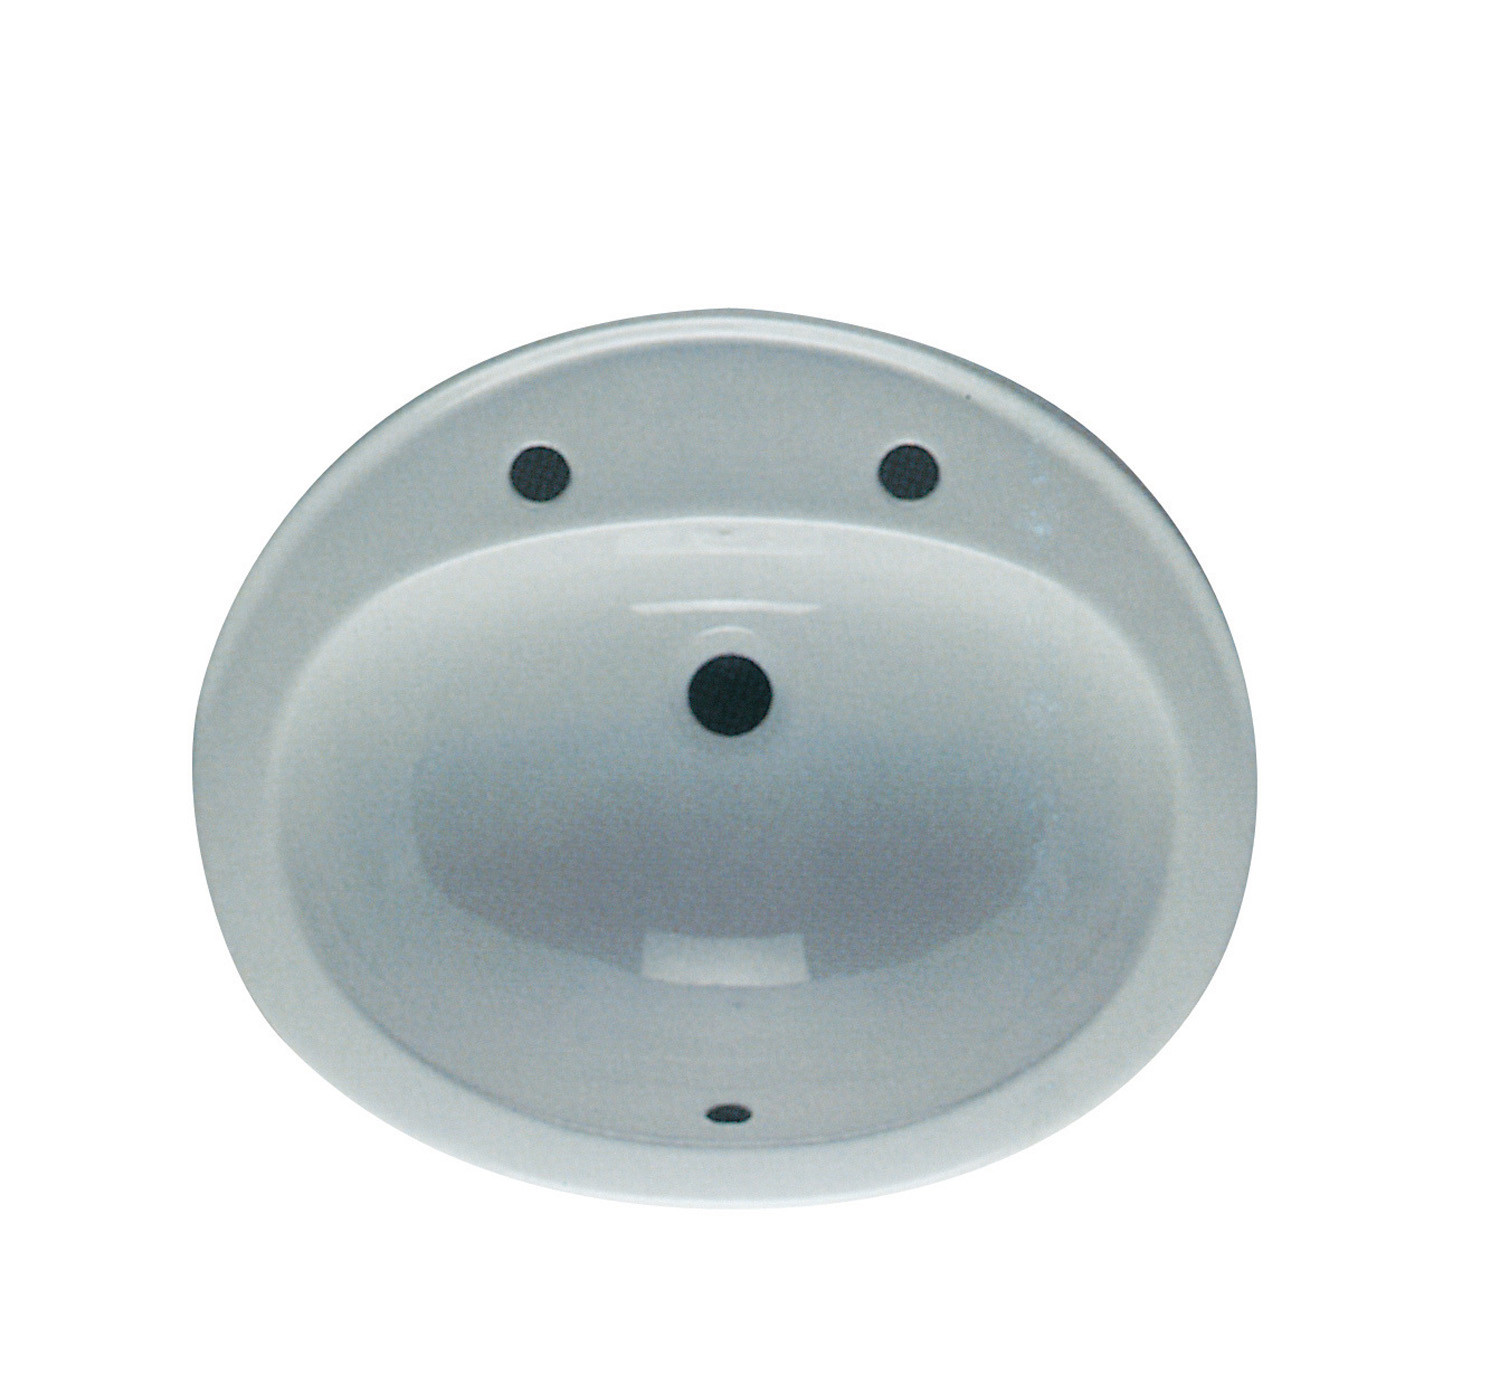 Maria 560mm Over-the-Counter Basin - 2 Tap Holes